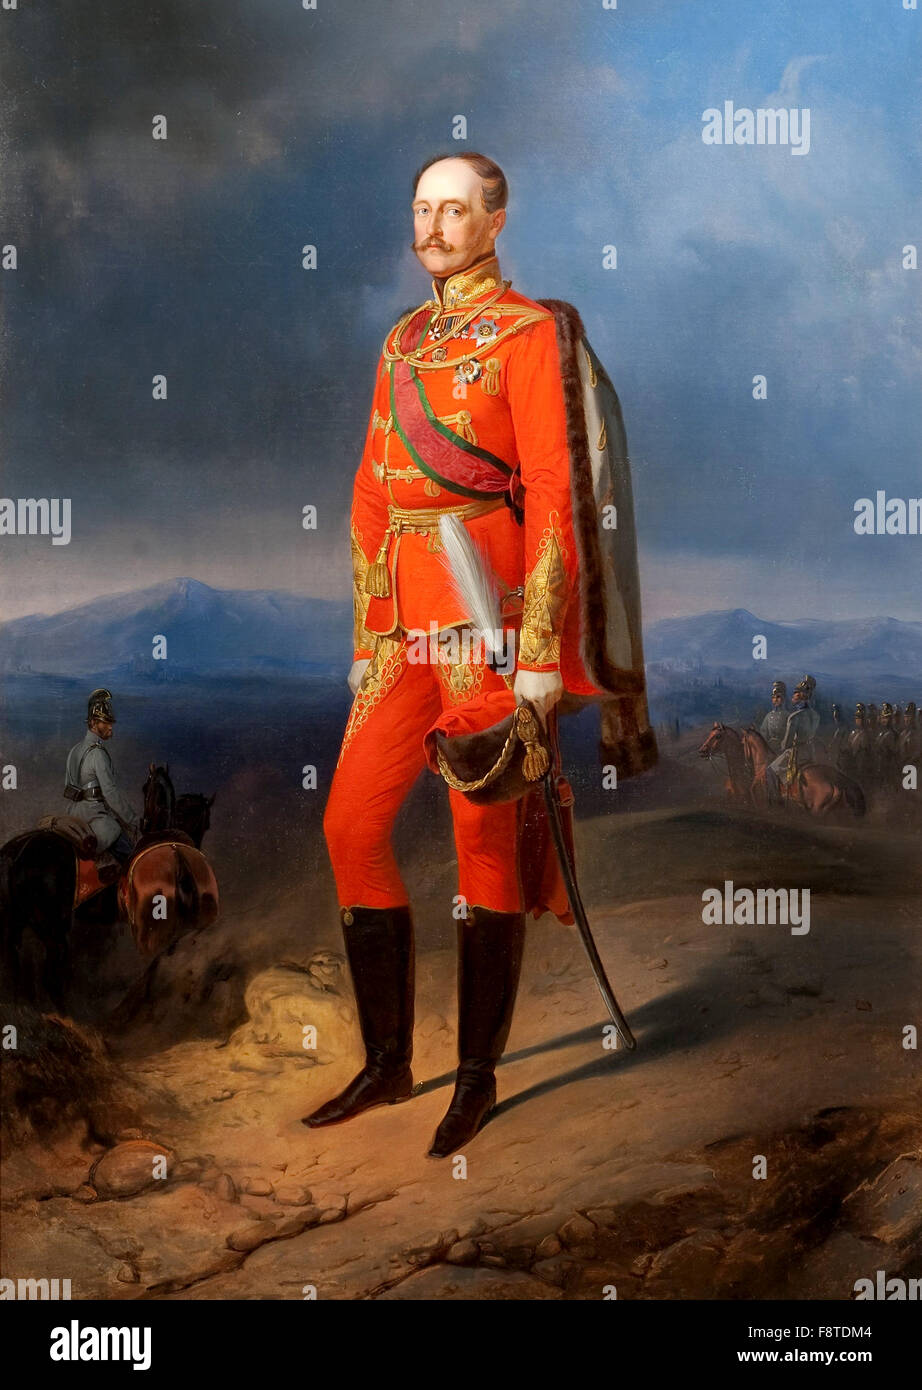 Emperor Nicholas I in Austrian Uniform, Nicholas I, Nikolai I Pavlovich, Emperor of Russia from 1825 until 1855. - Stock Image